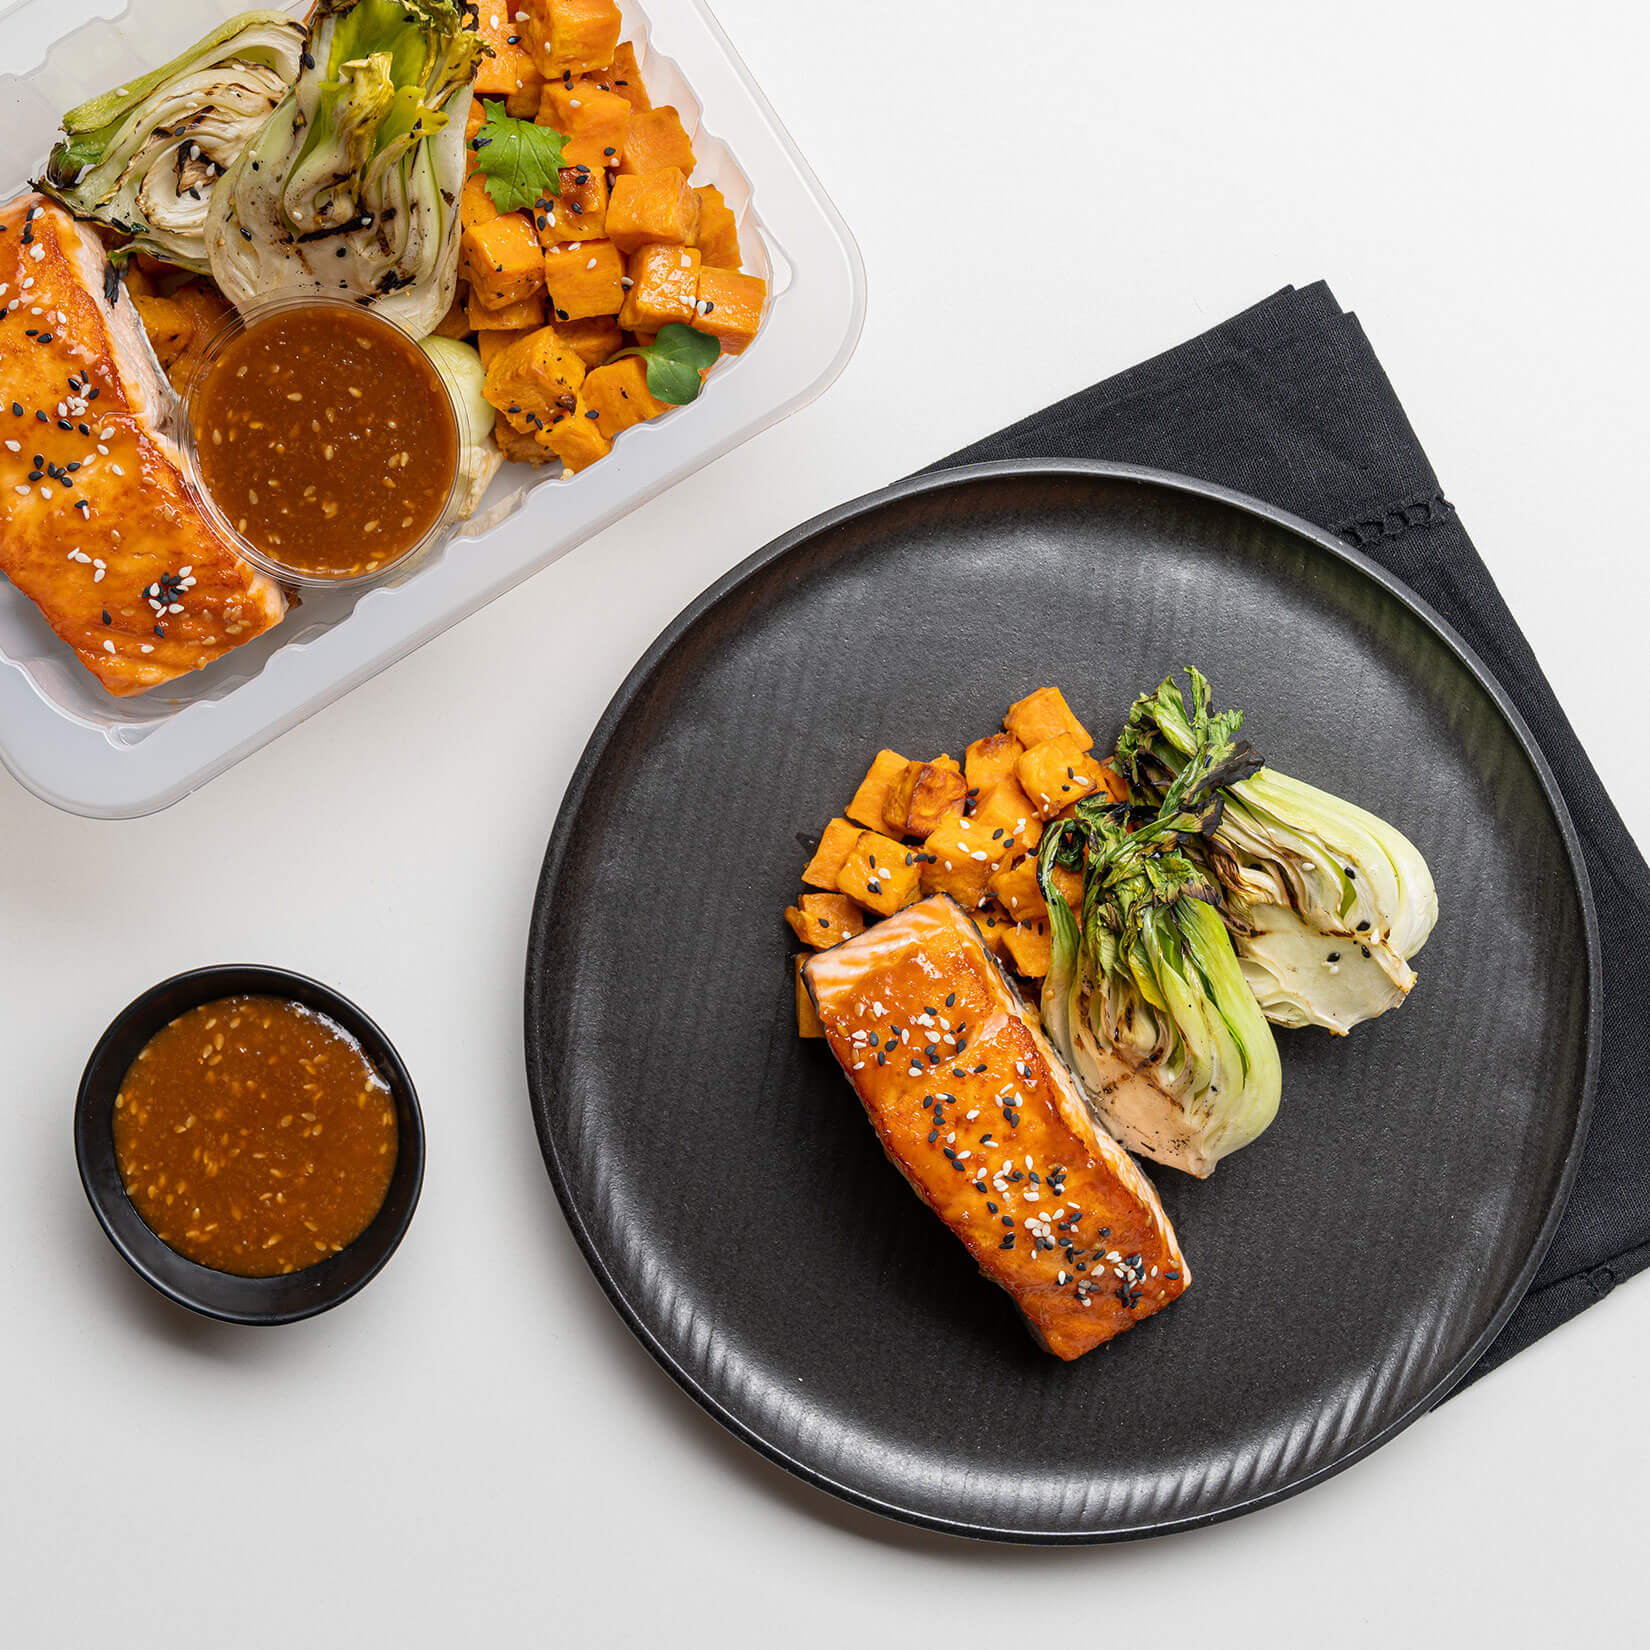 Ready-made meals